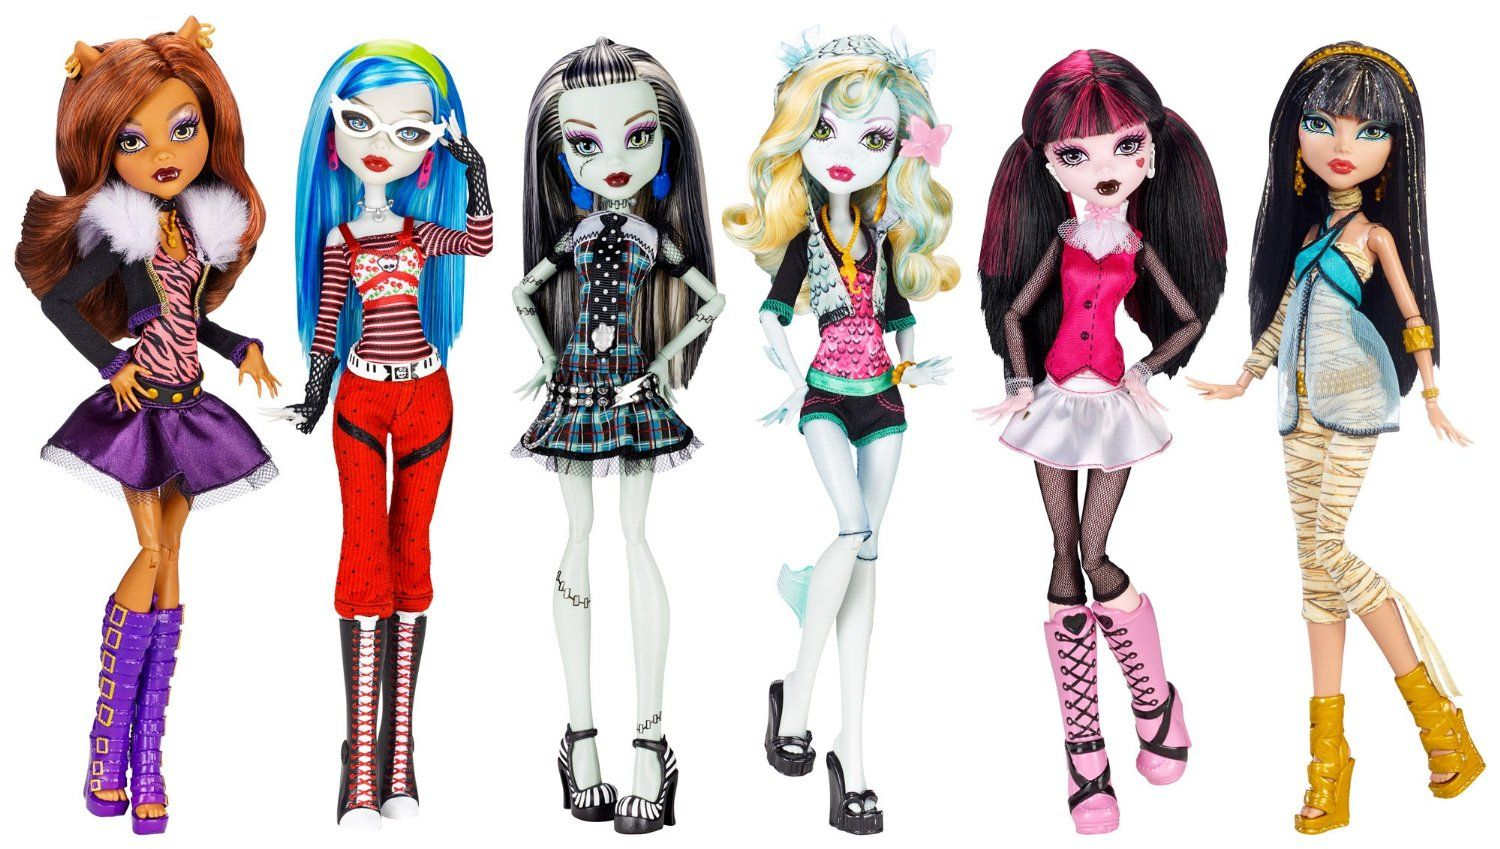 Amazon Com Monster High Dolls Original Ghouls Collection Toys Games New Monster High Dolls Monster High Doll Accessories Monster High Dolls